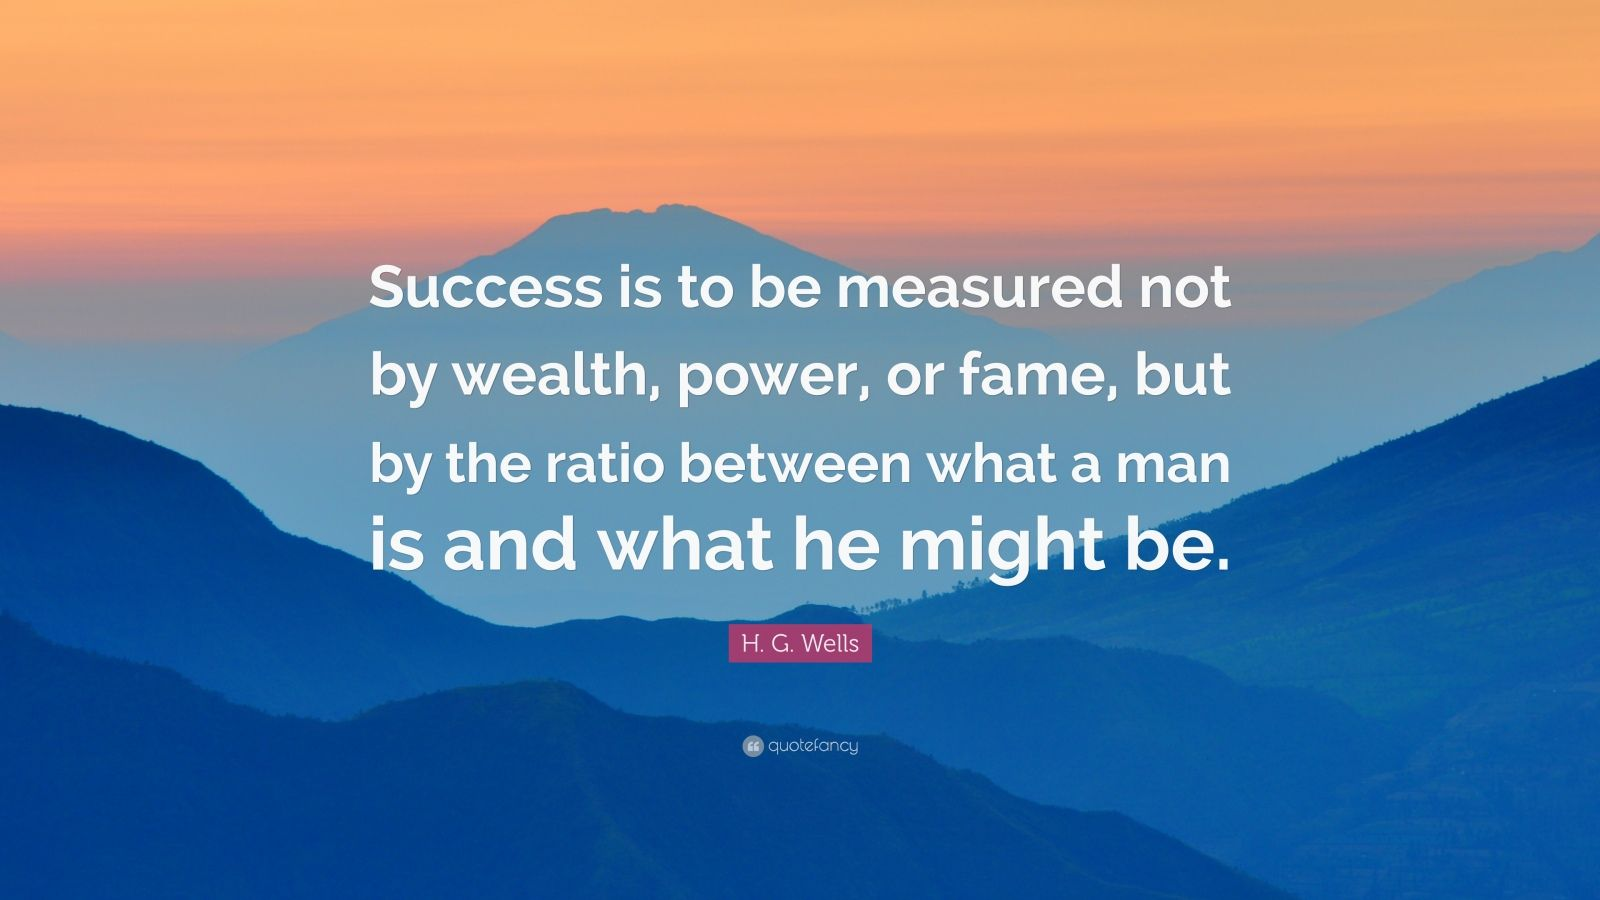 """H. G. Wells Quote: """"Success is to be measured not by wealth, power, or fame, but by the ratio between what a man is and what he might be."""""""